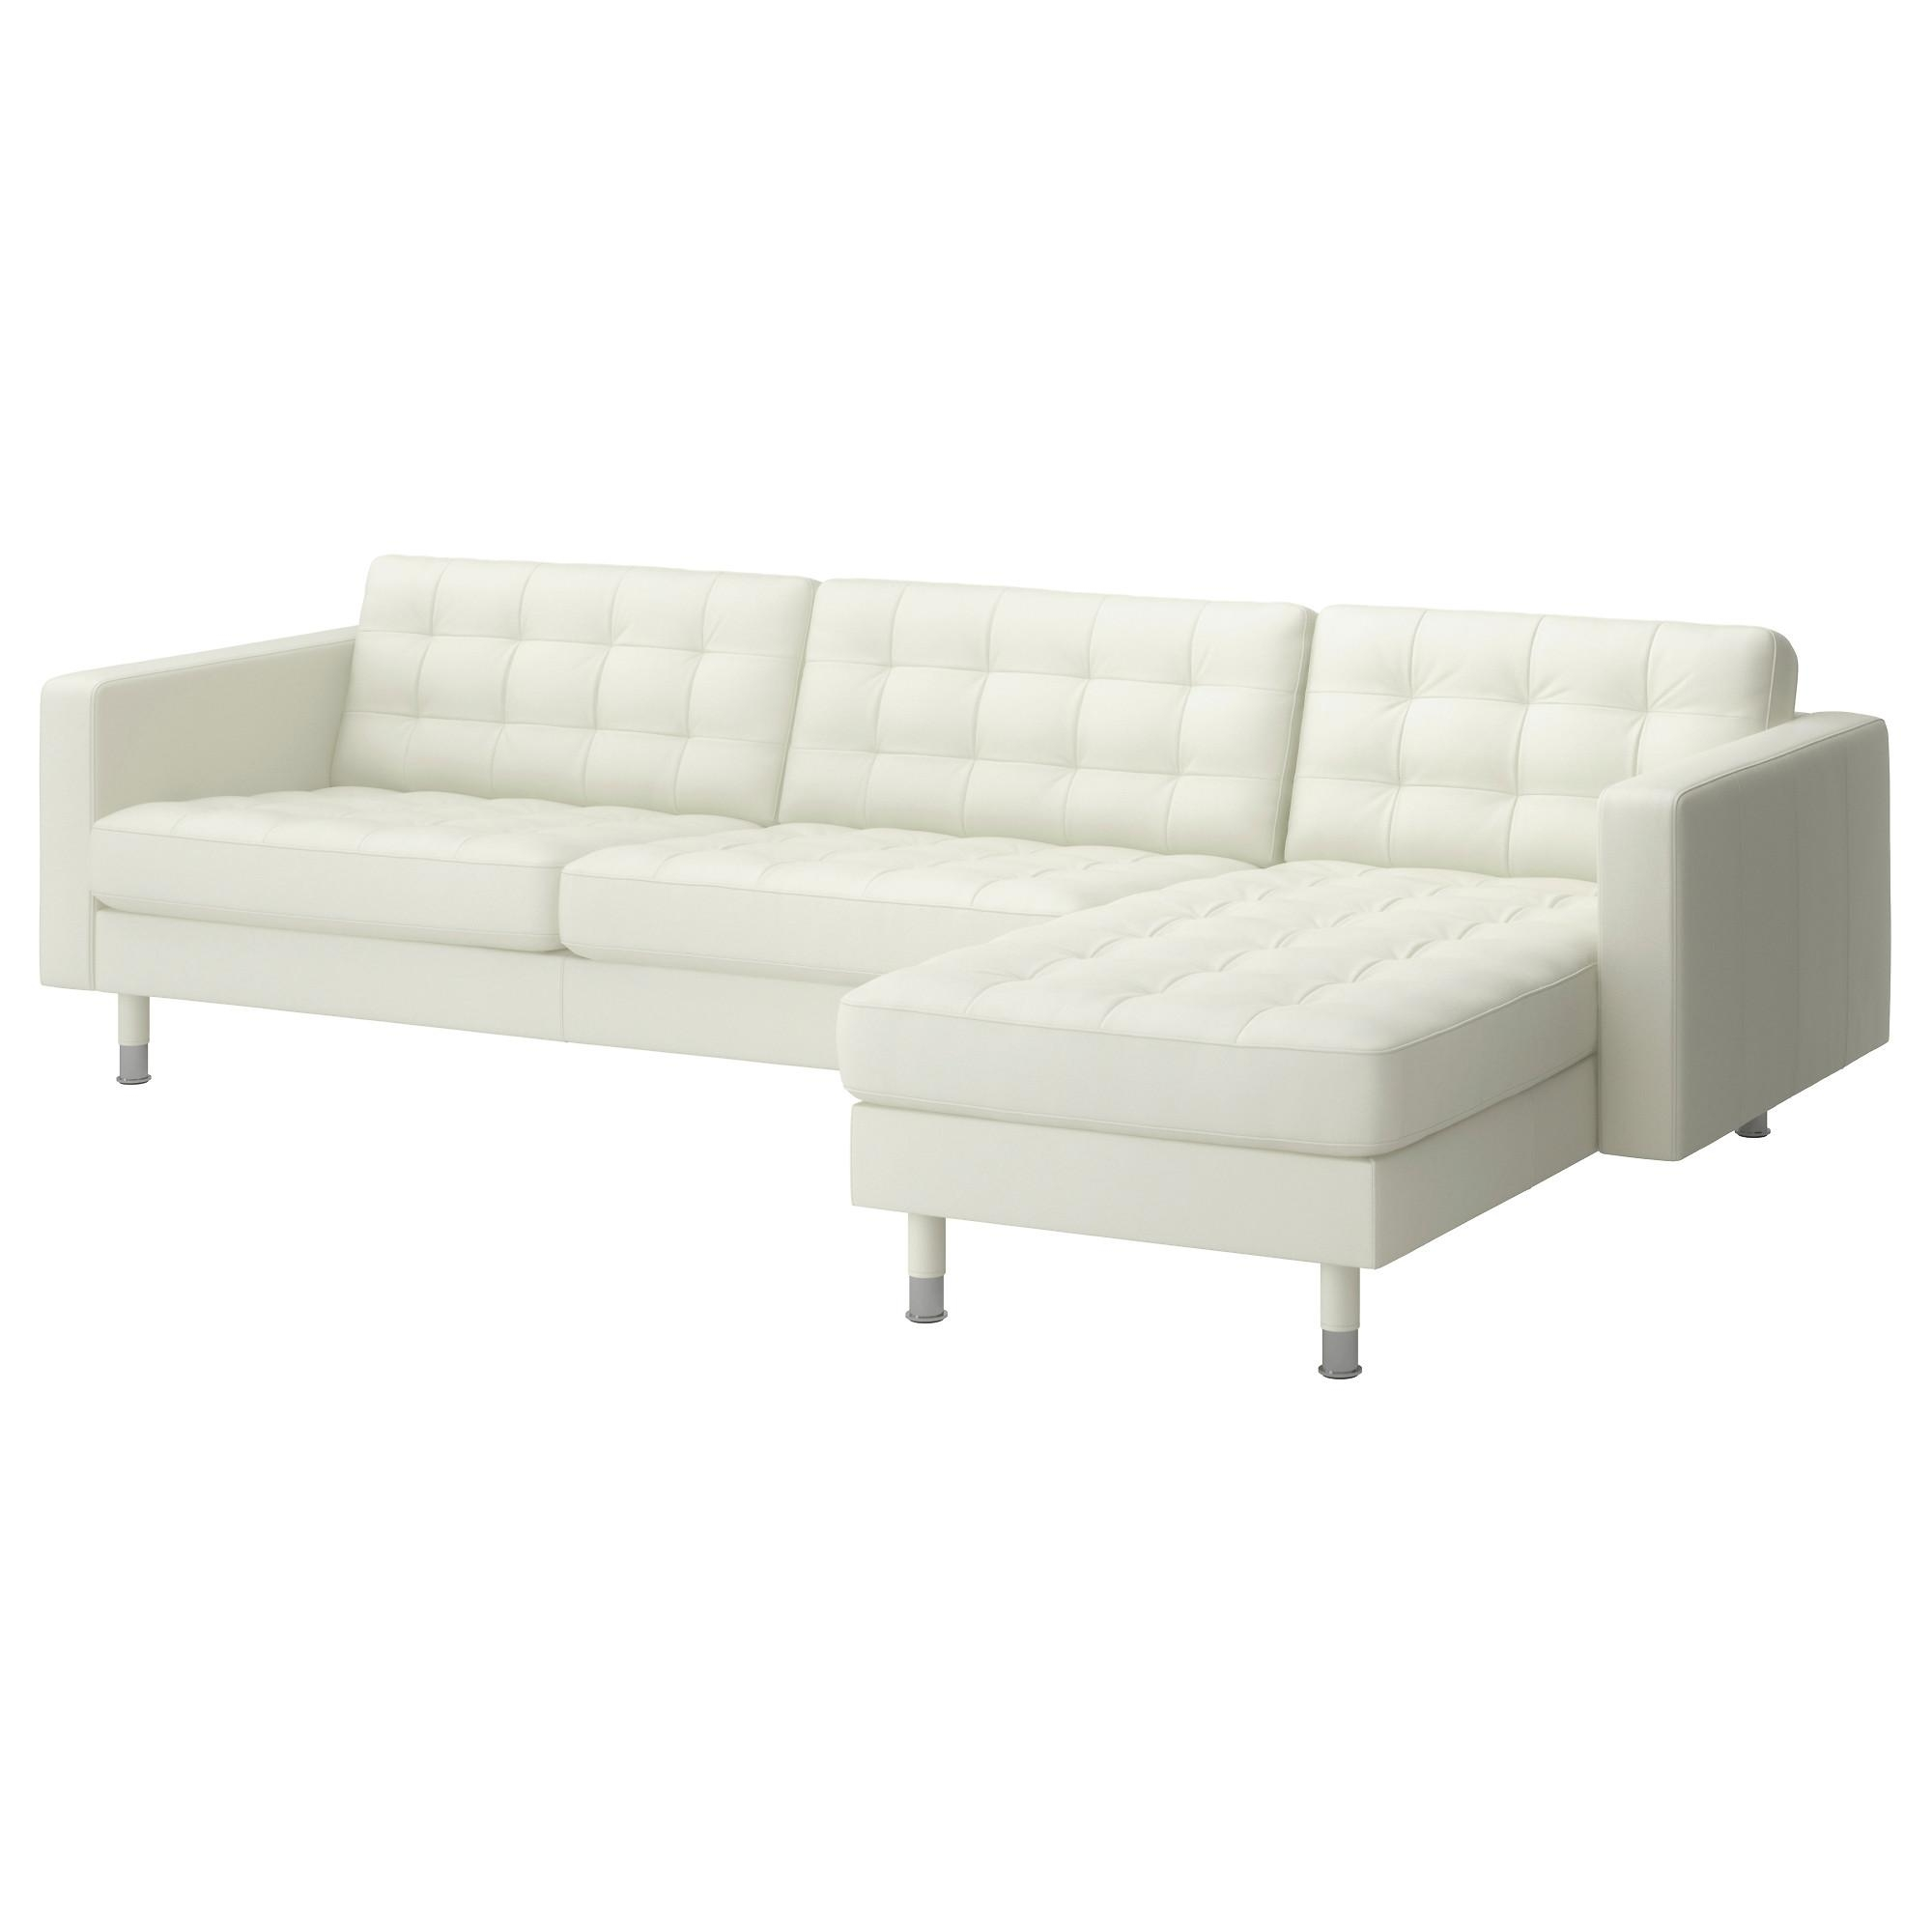 Leather & Faux Leather Couches, Chairs & Ottomans – Ikea Intended For White Leather Sofas (View 4 of 20)